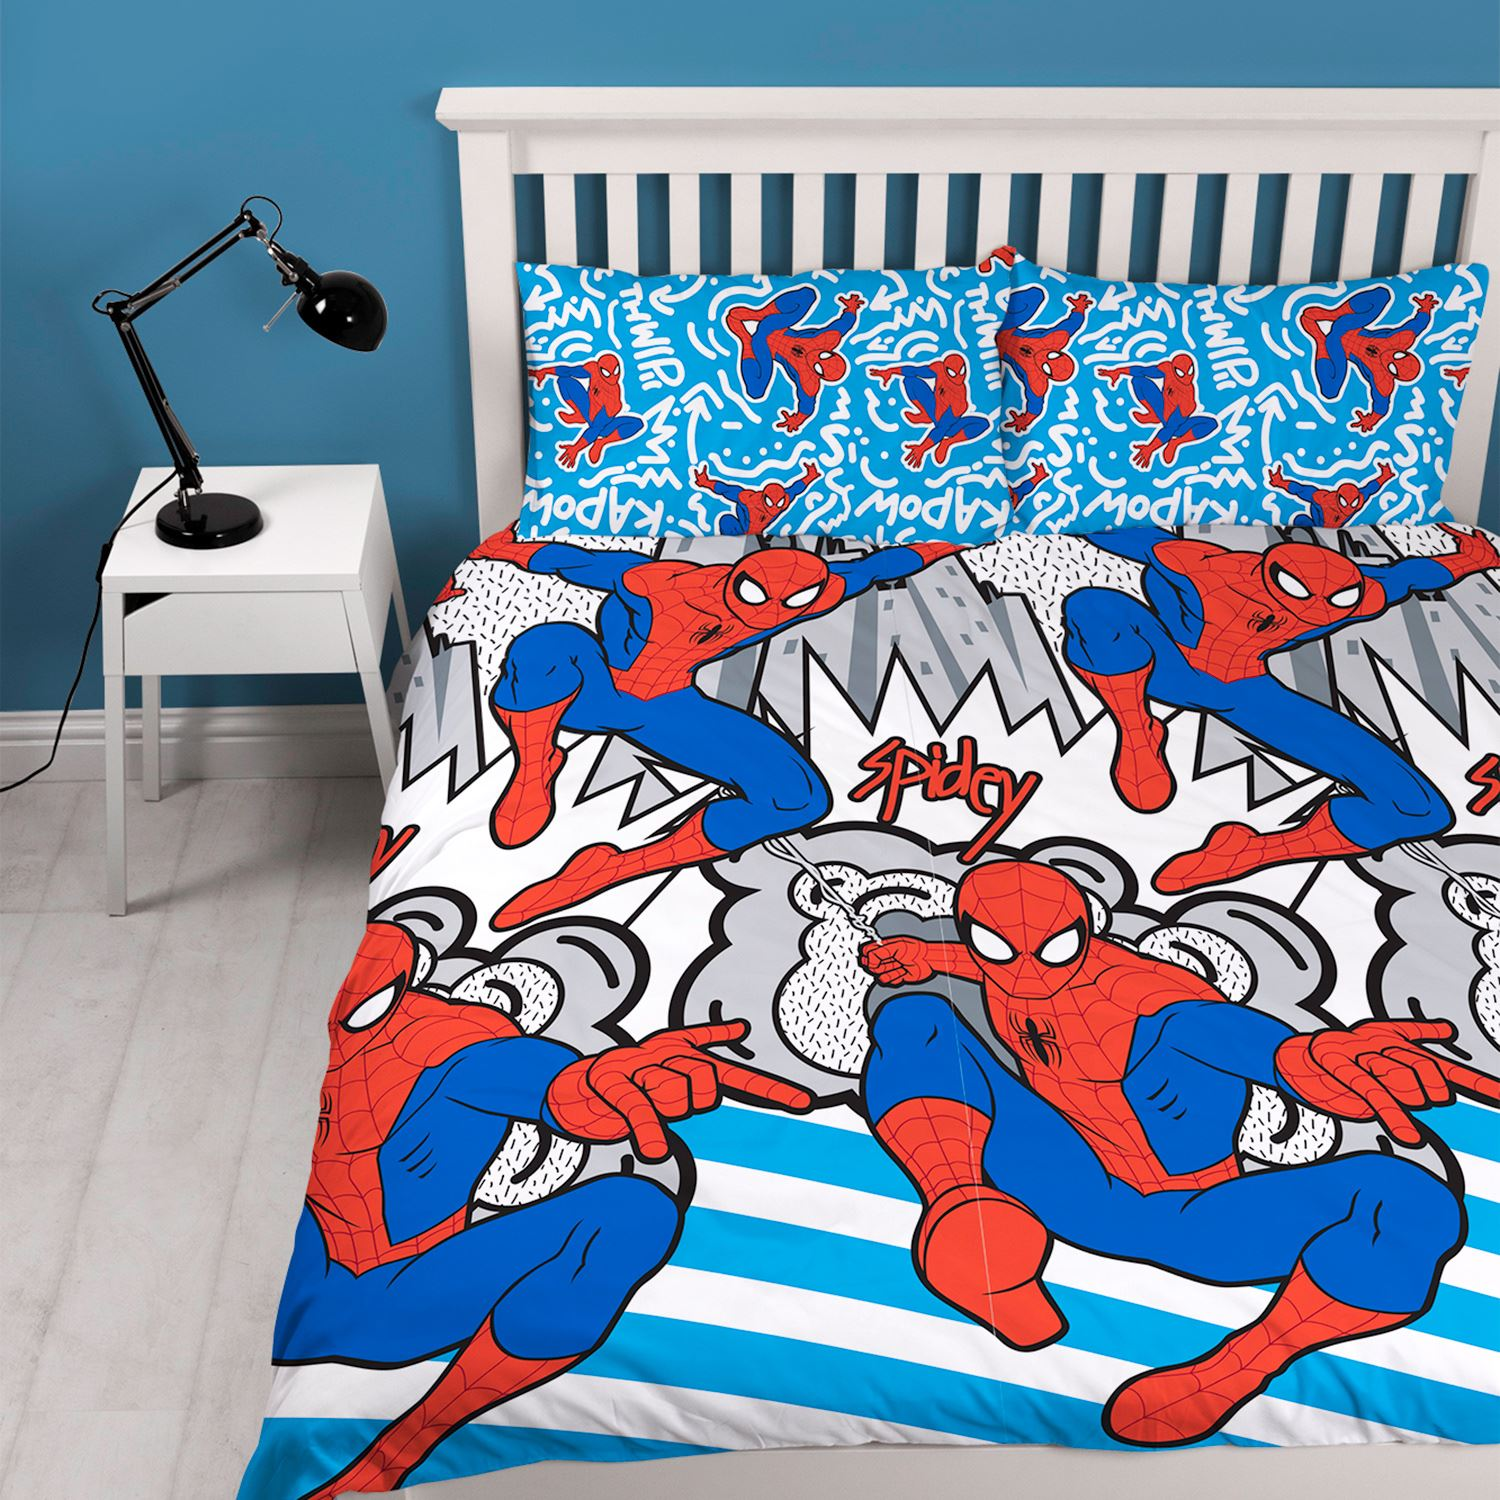 bedrooms toddler small rug walmart bedding organised colors curtains creating an year charming graphics giant boy room large set for bikes book sale twin and paint decals boys stickers rugs spiderman bedroom decor carpet box great in old wall decal mess